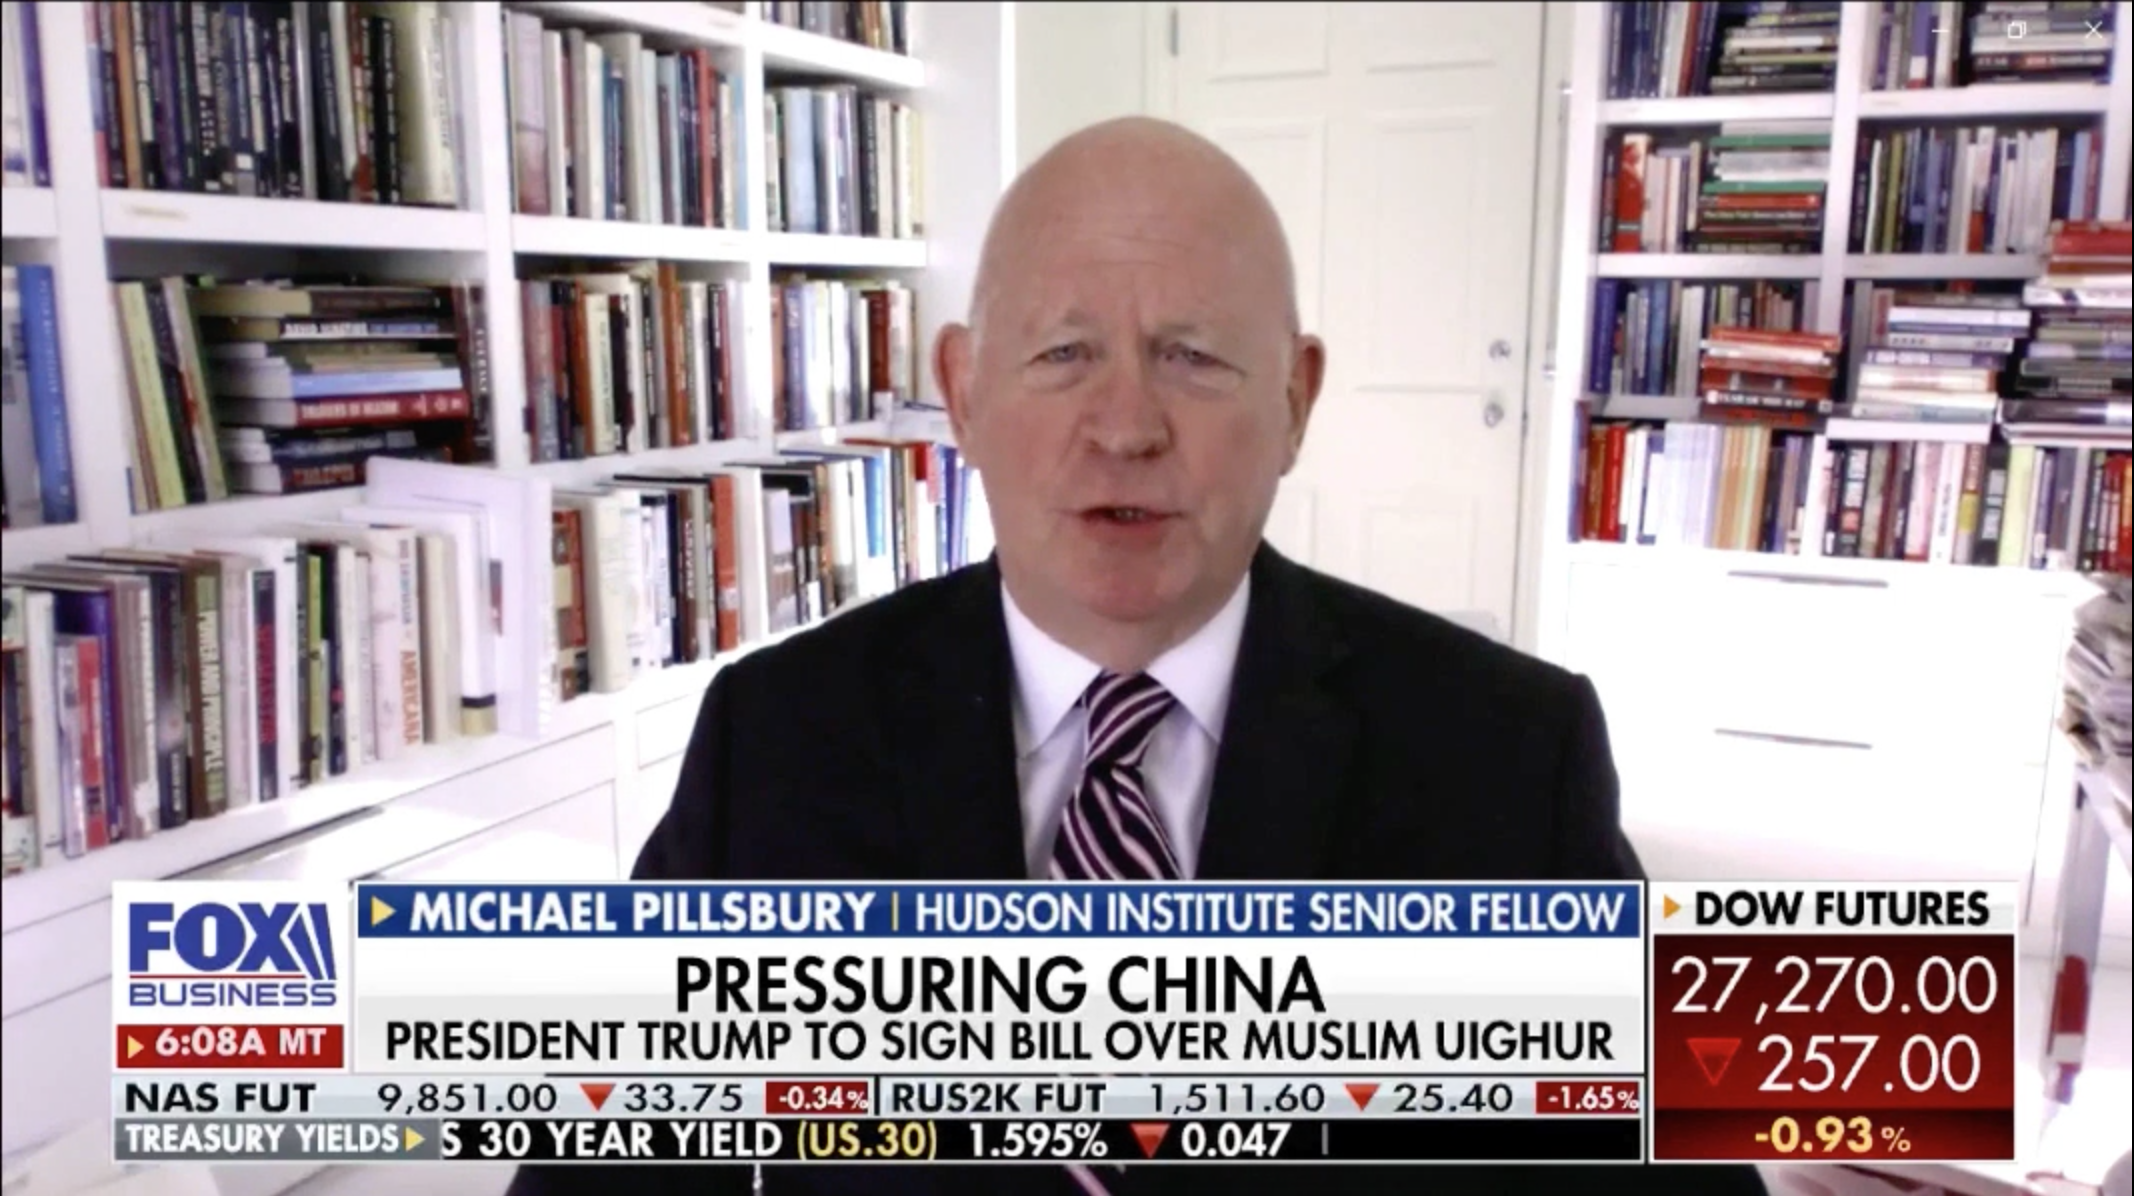 Michael Pillsbury discusses the growing list of tensions between the U.S. and China.